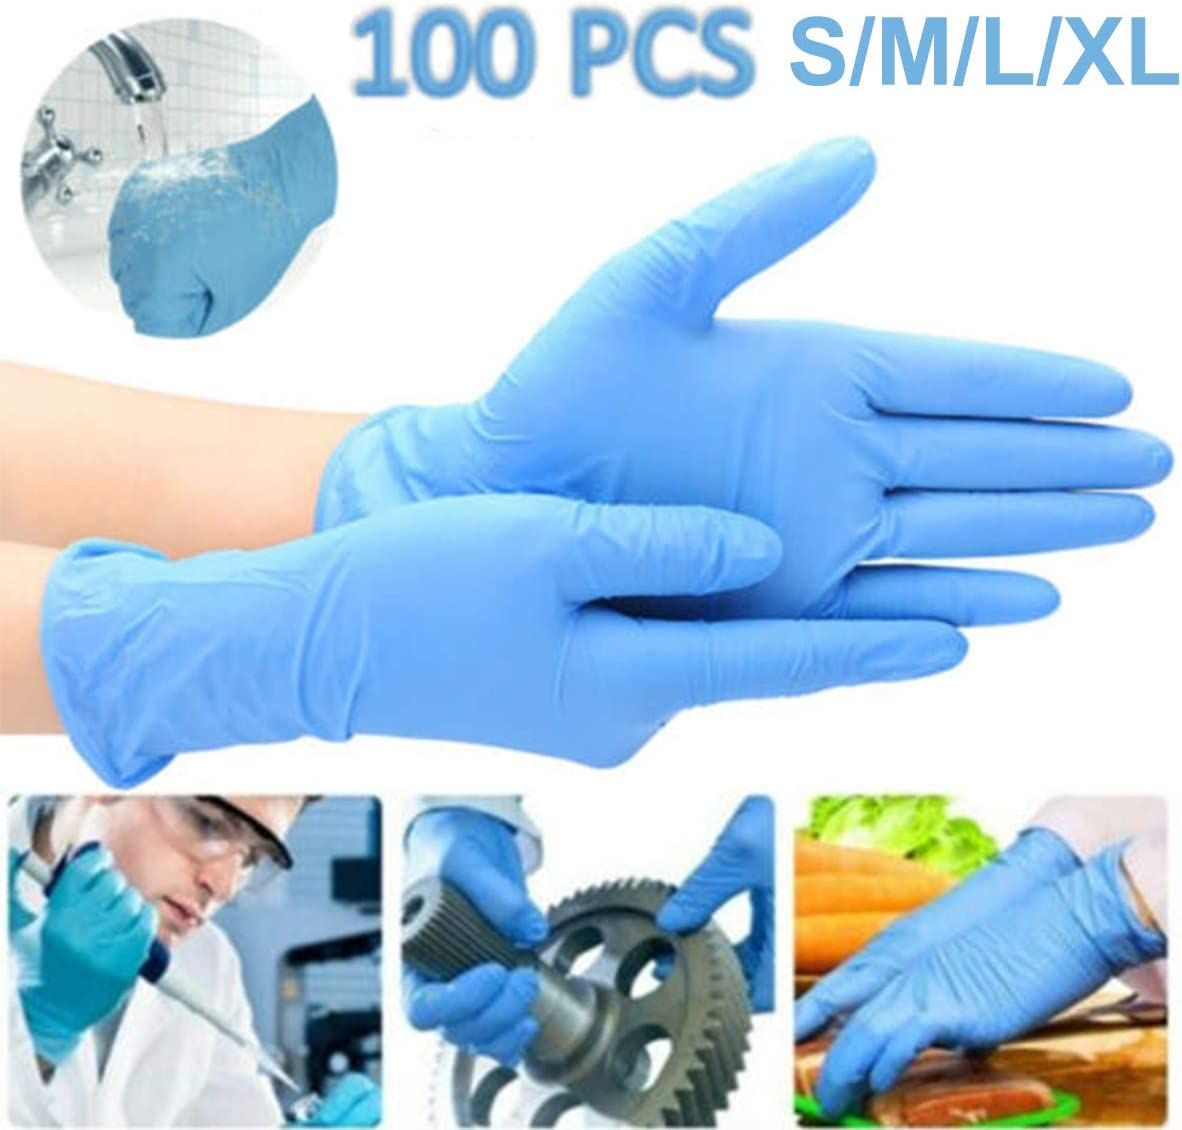 100 Pcs Black Industrial Disposable Nitrile Latex Gloves Powder-Free Size